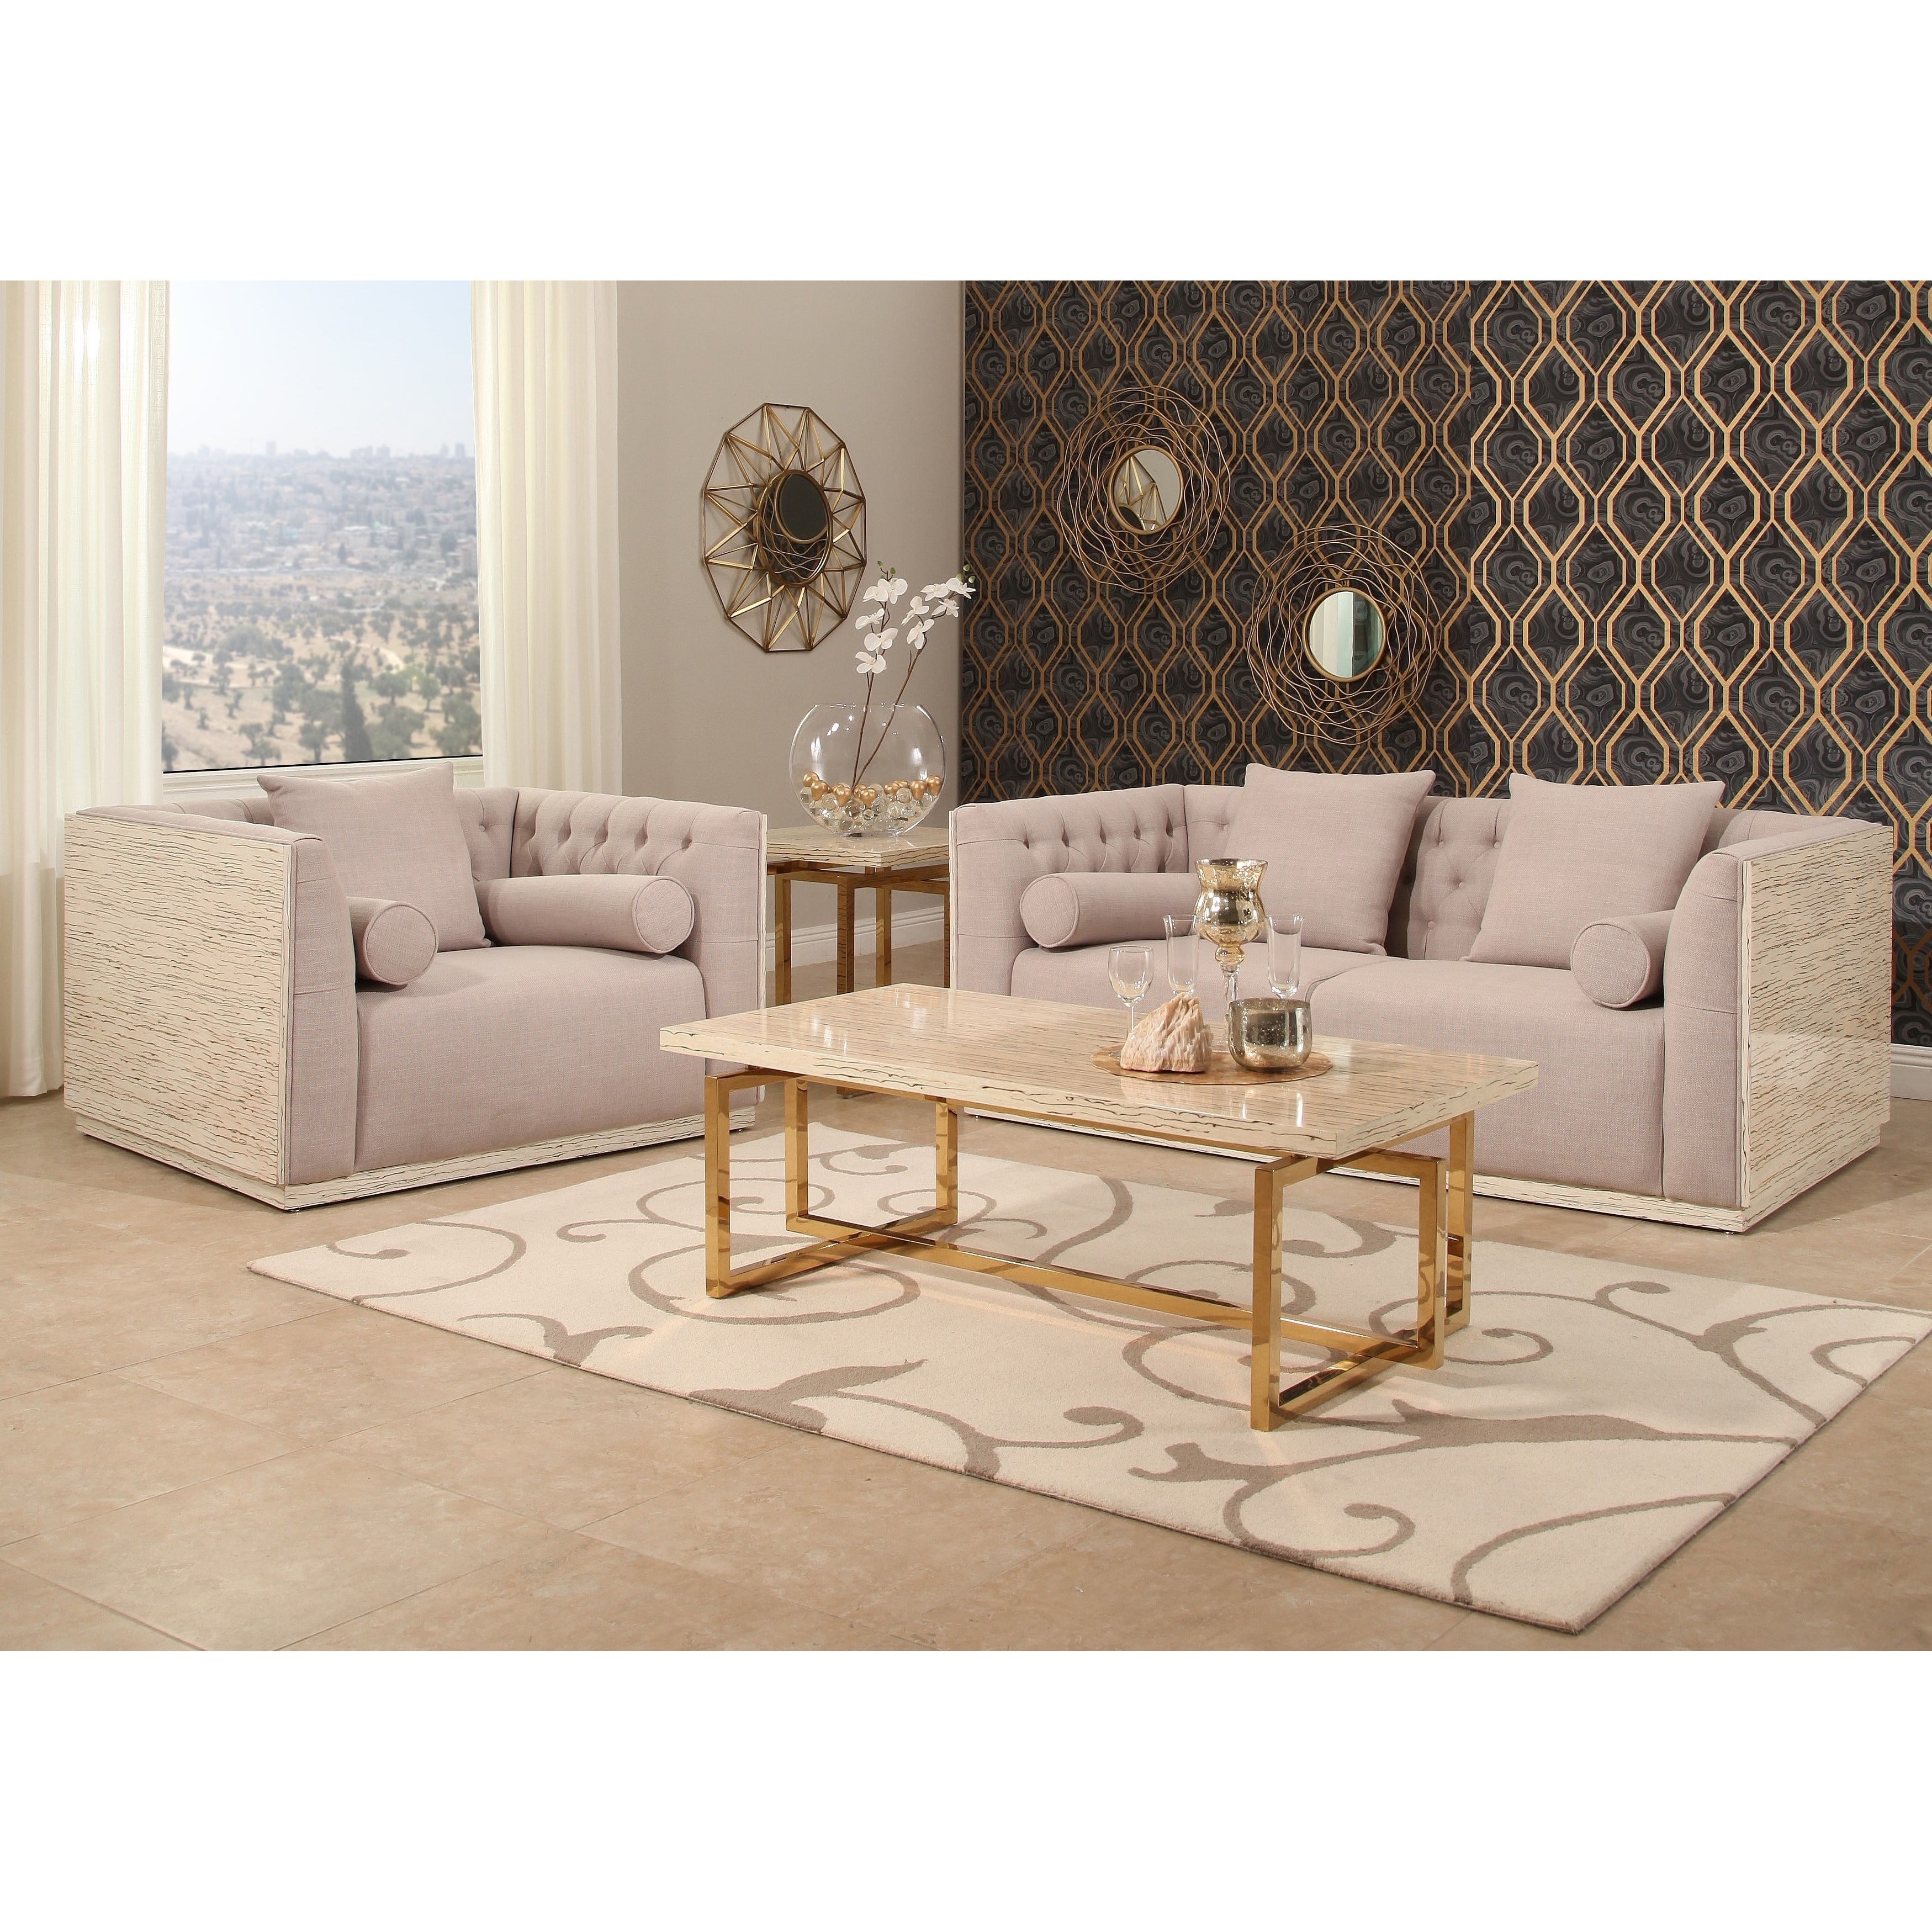 Abbyson Crystal 2 Piece Wood Shell Seating Set Free Shipping